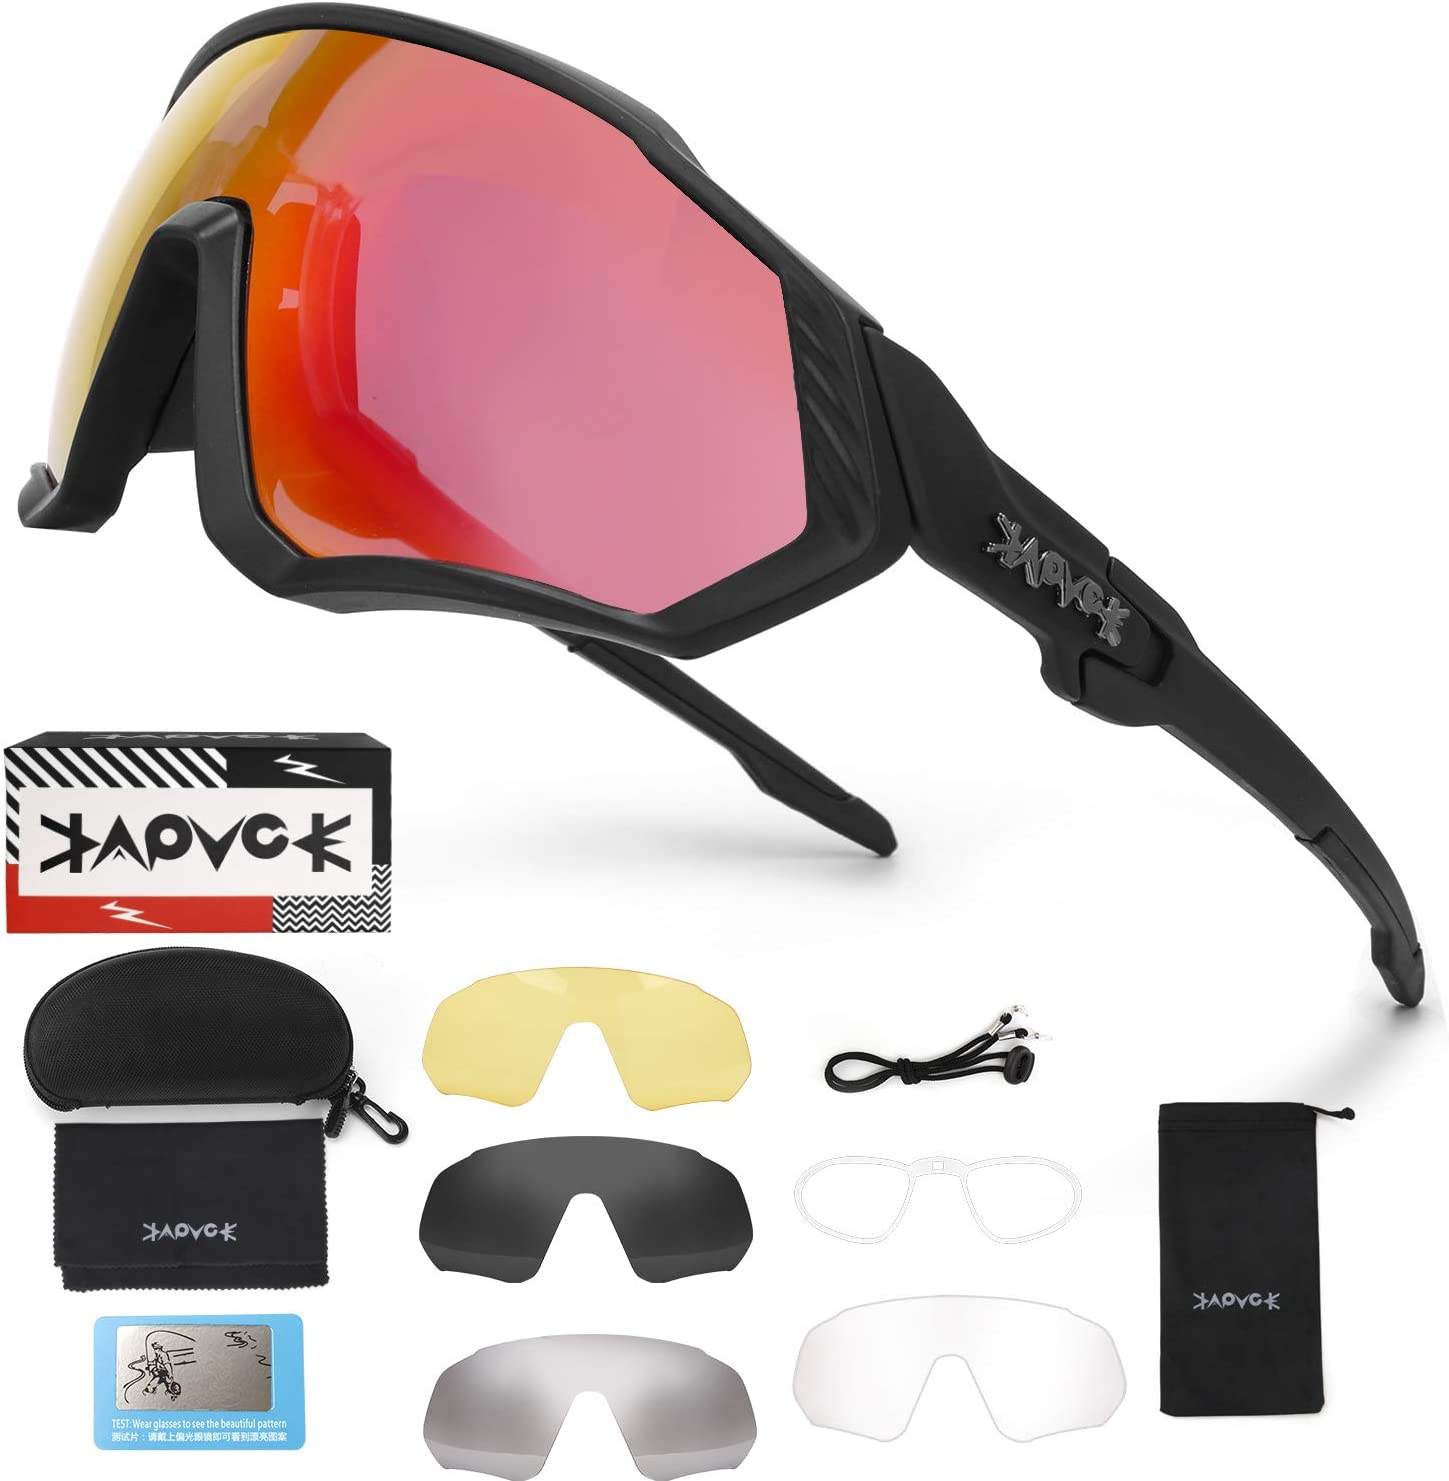 Polarized Sports Sunglasses Cycling Glasses with 4 Interchangeable Lenses,Mens Womens Cycling Glasses,Baseball Running Fishing Ski Running Golf Driving Sunglasses